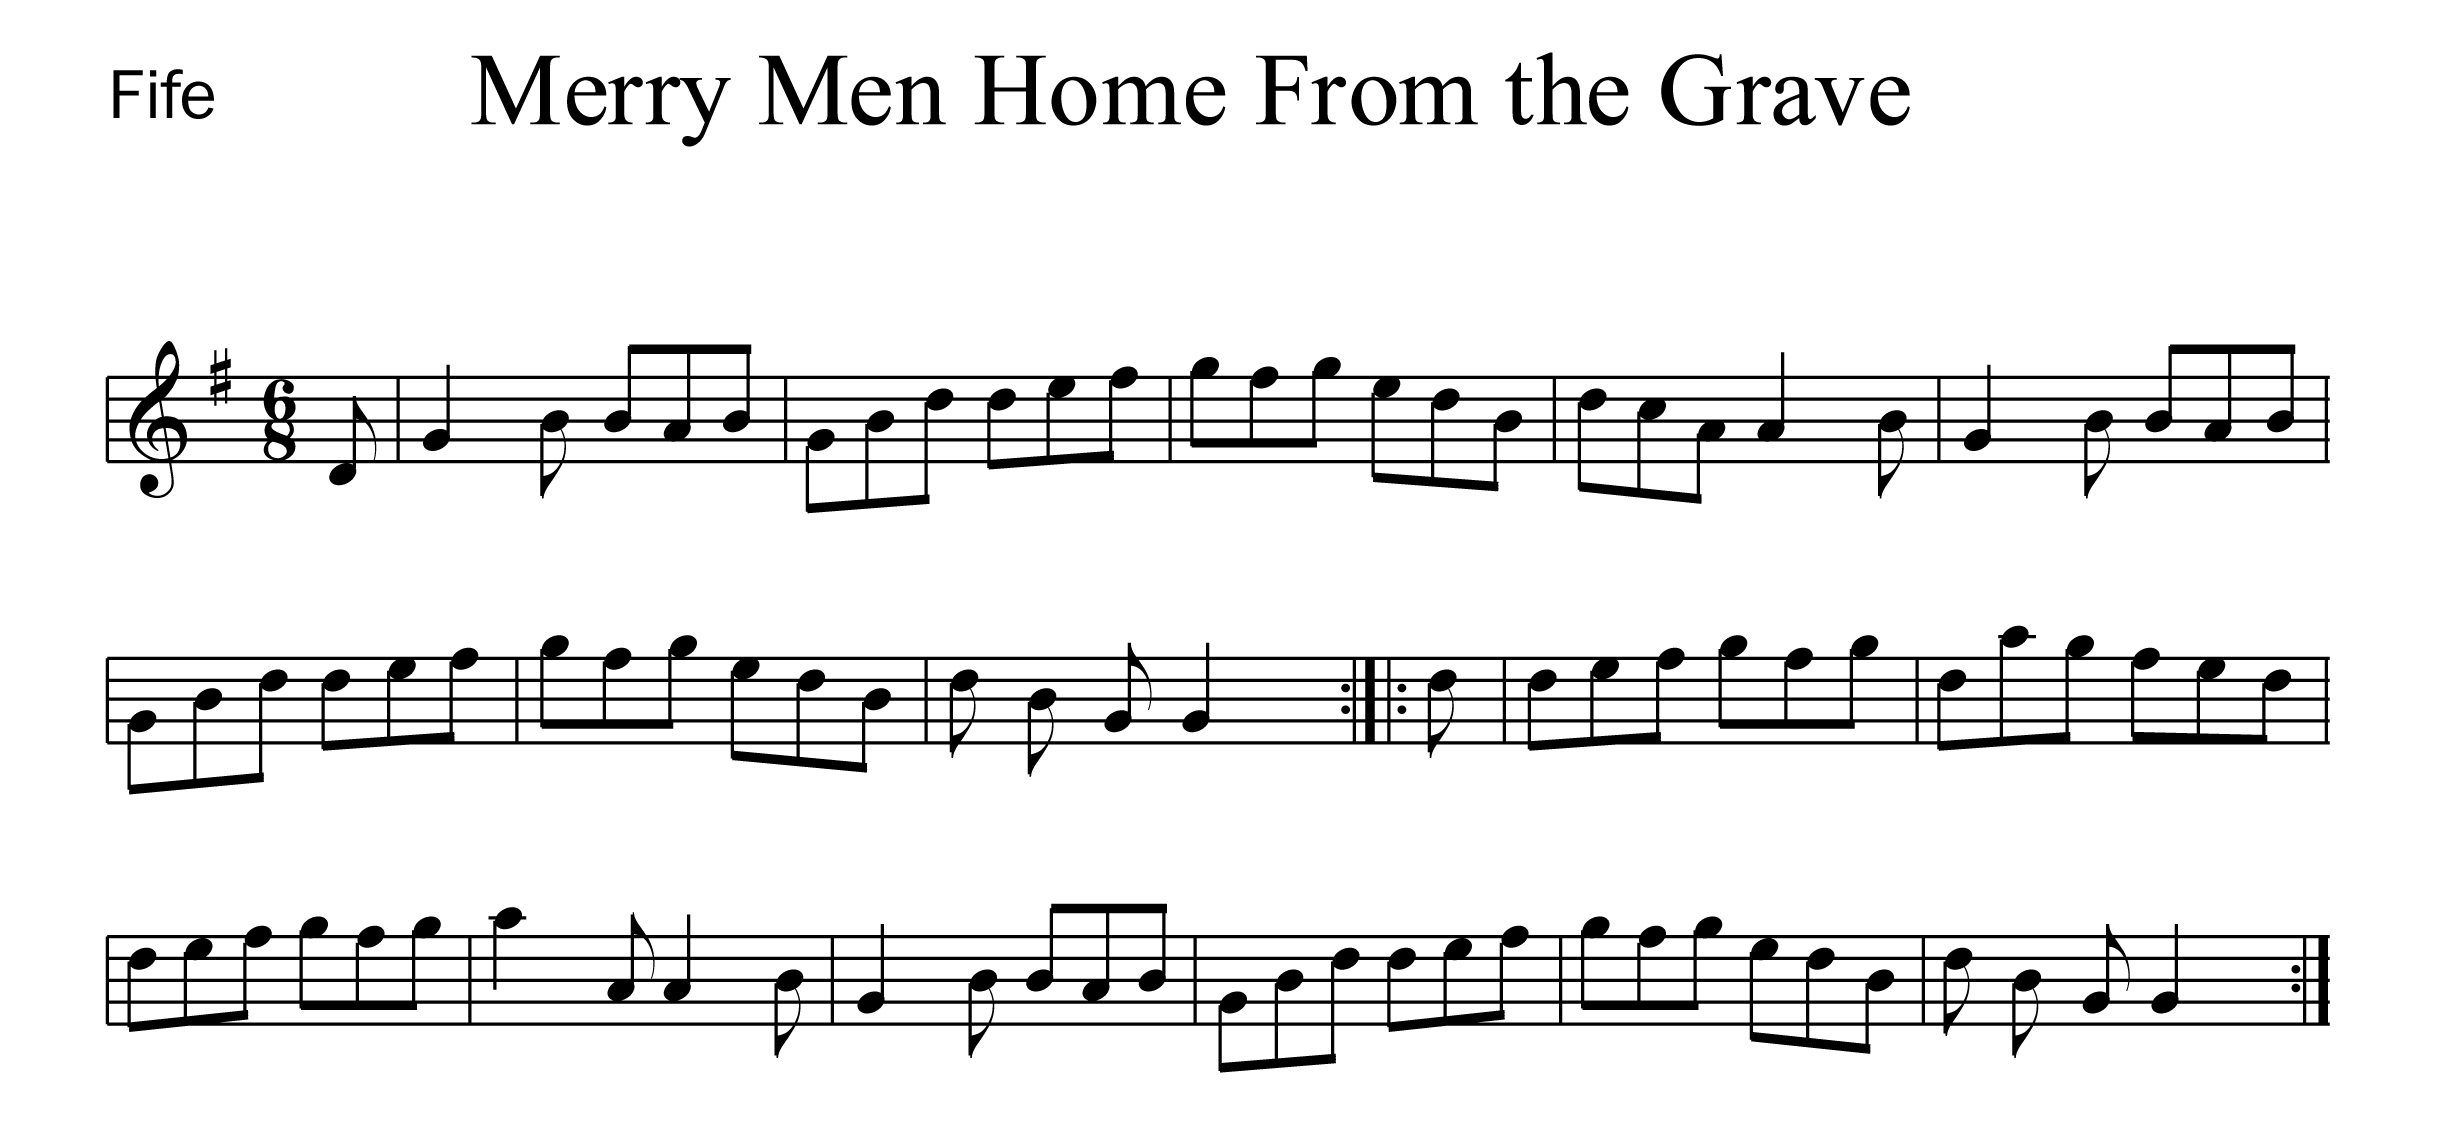 Merry Men Home From the Grave